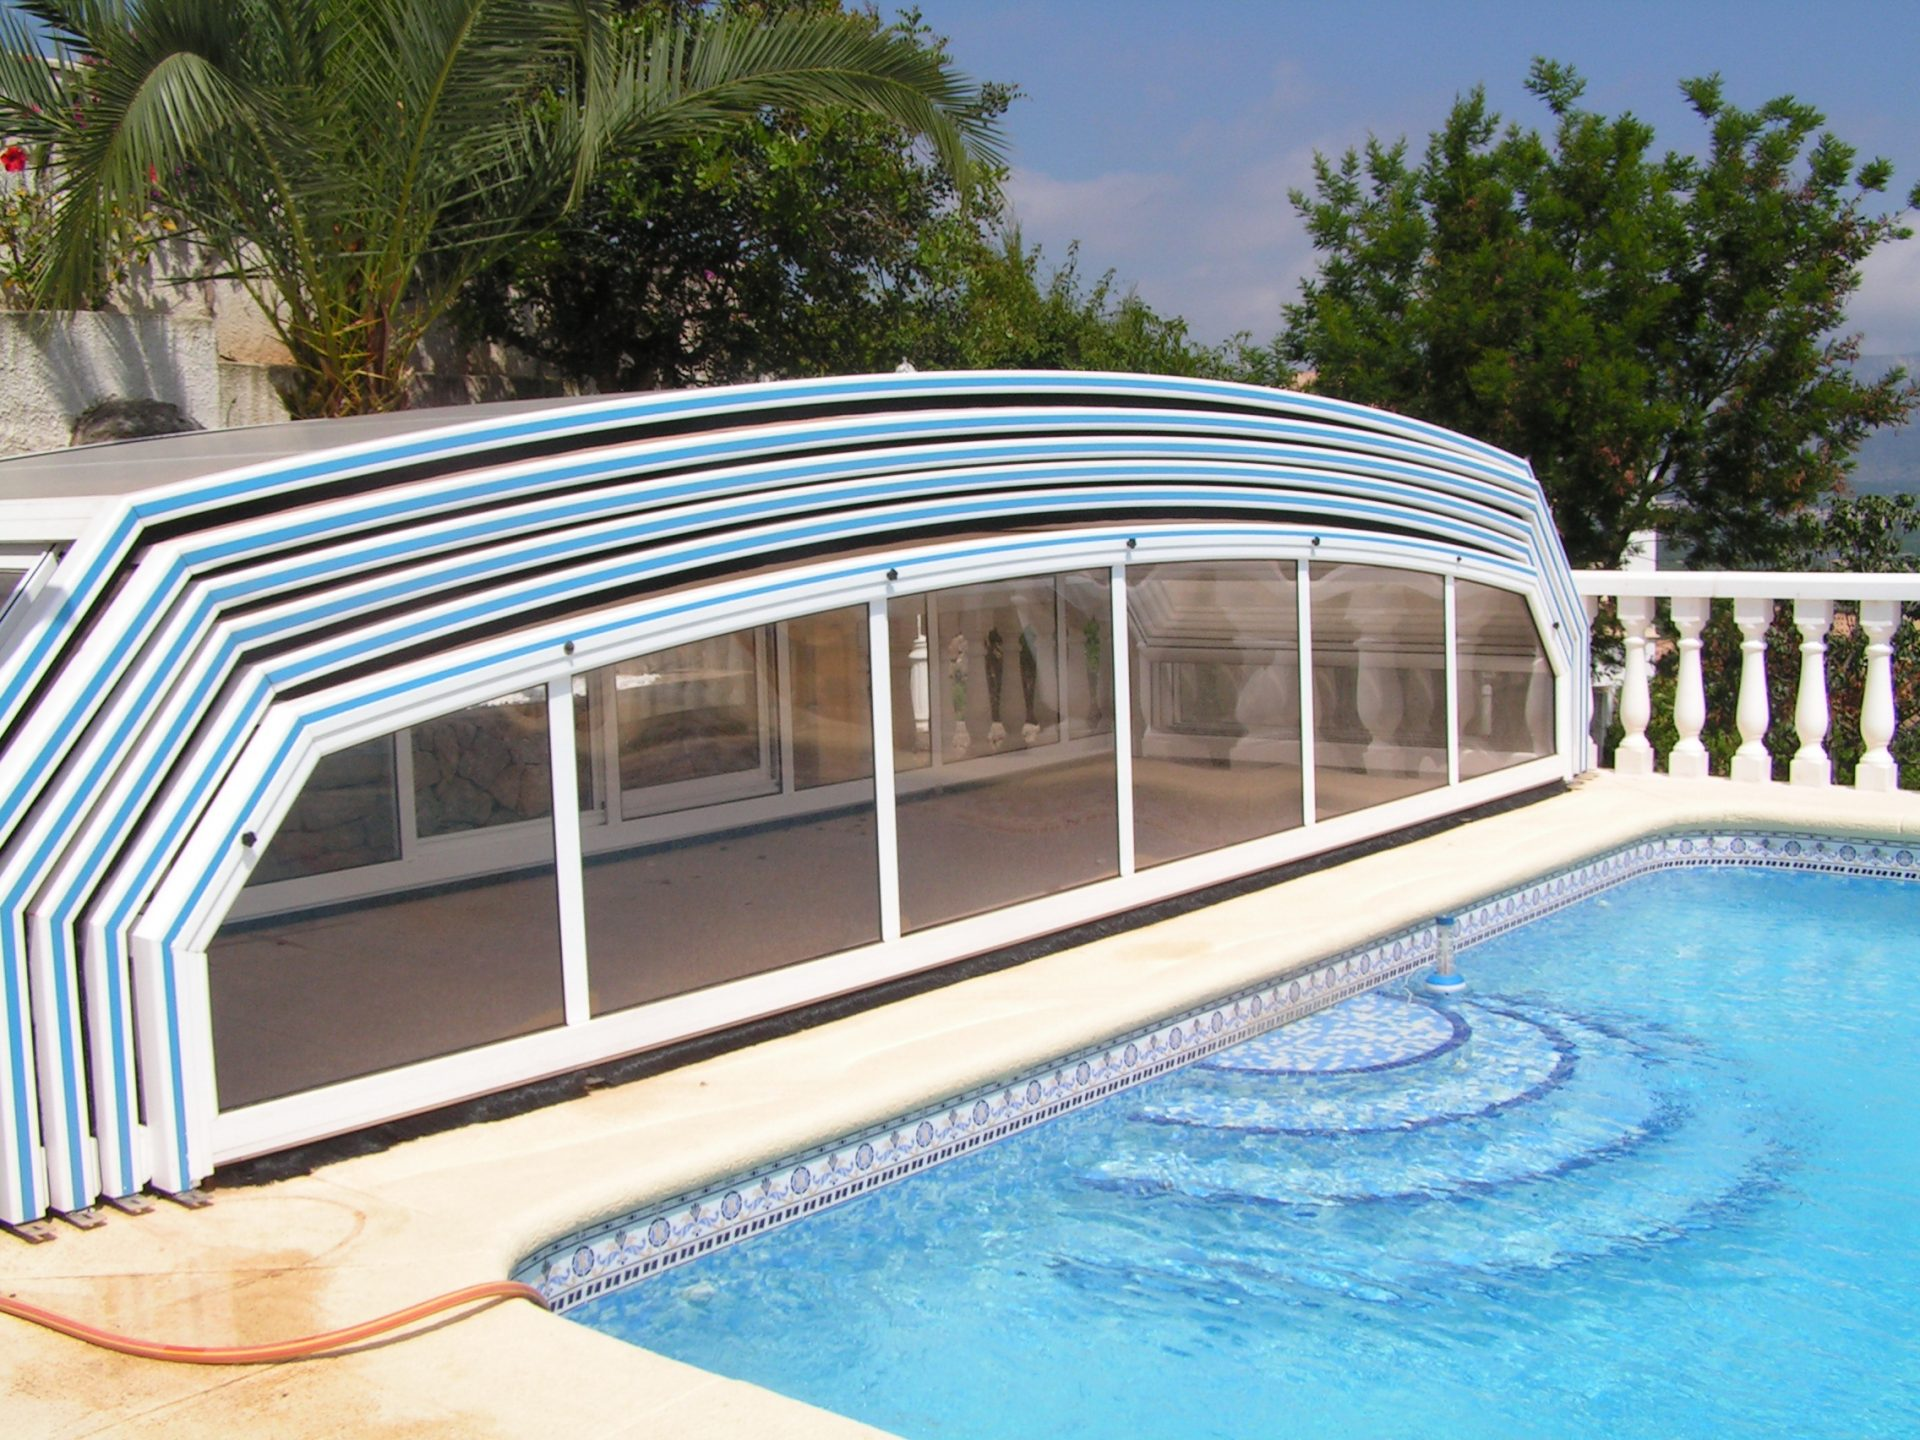 Abri piscine paris t lescopique sur roulette for Abri piscine telescopique